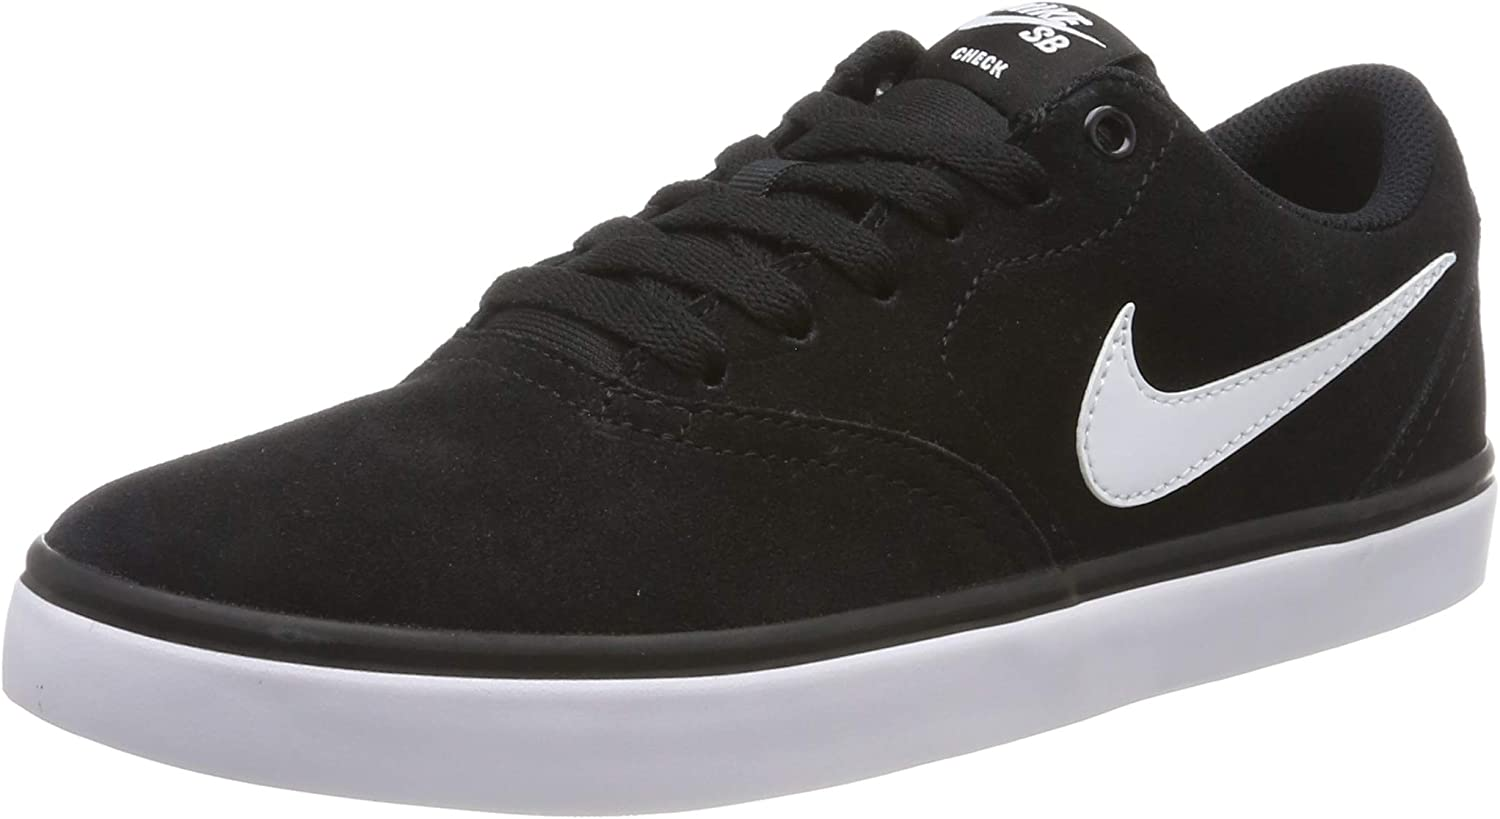 Nike Men s SB Check Solarsoft Skate Shoe Black White